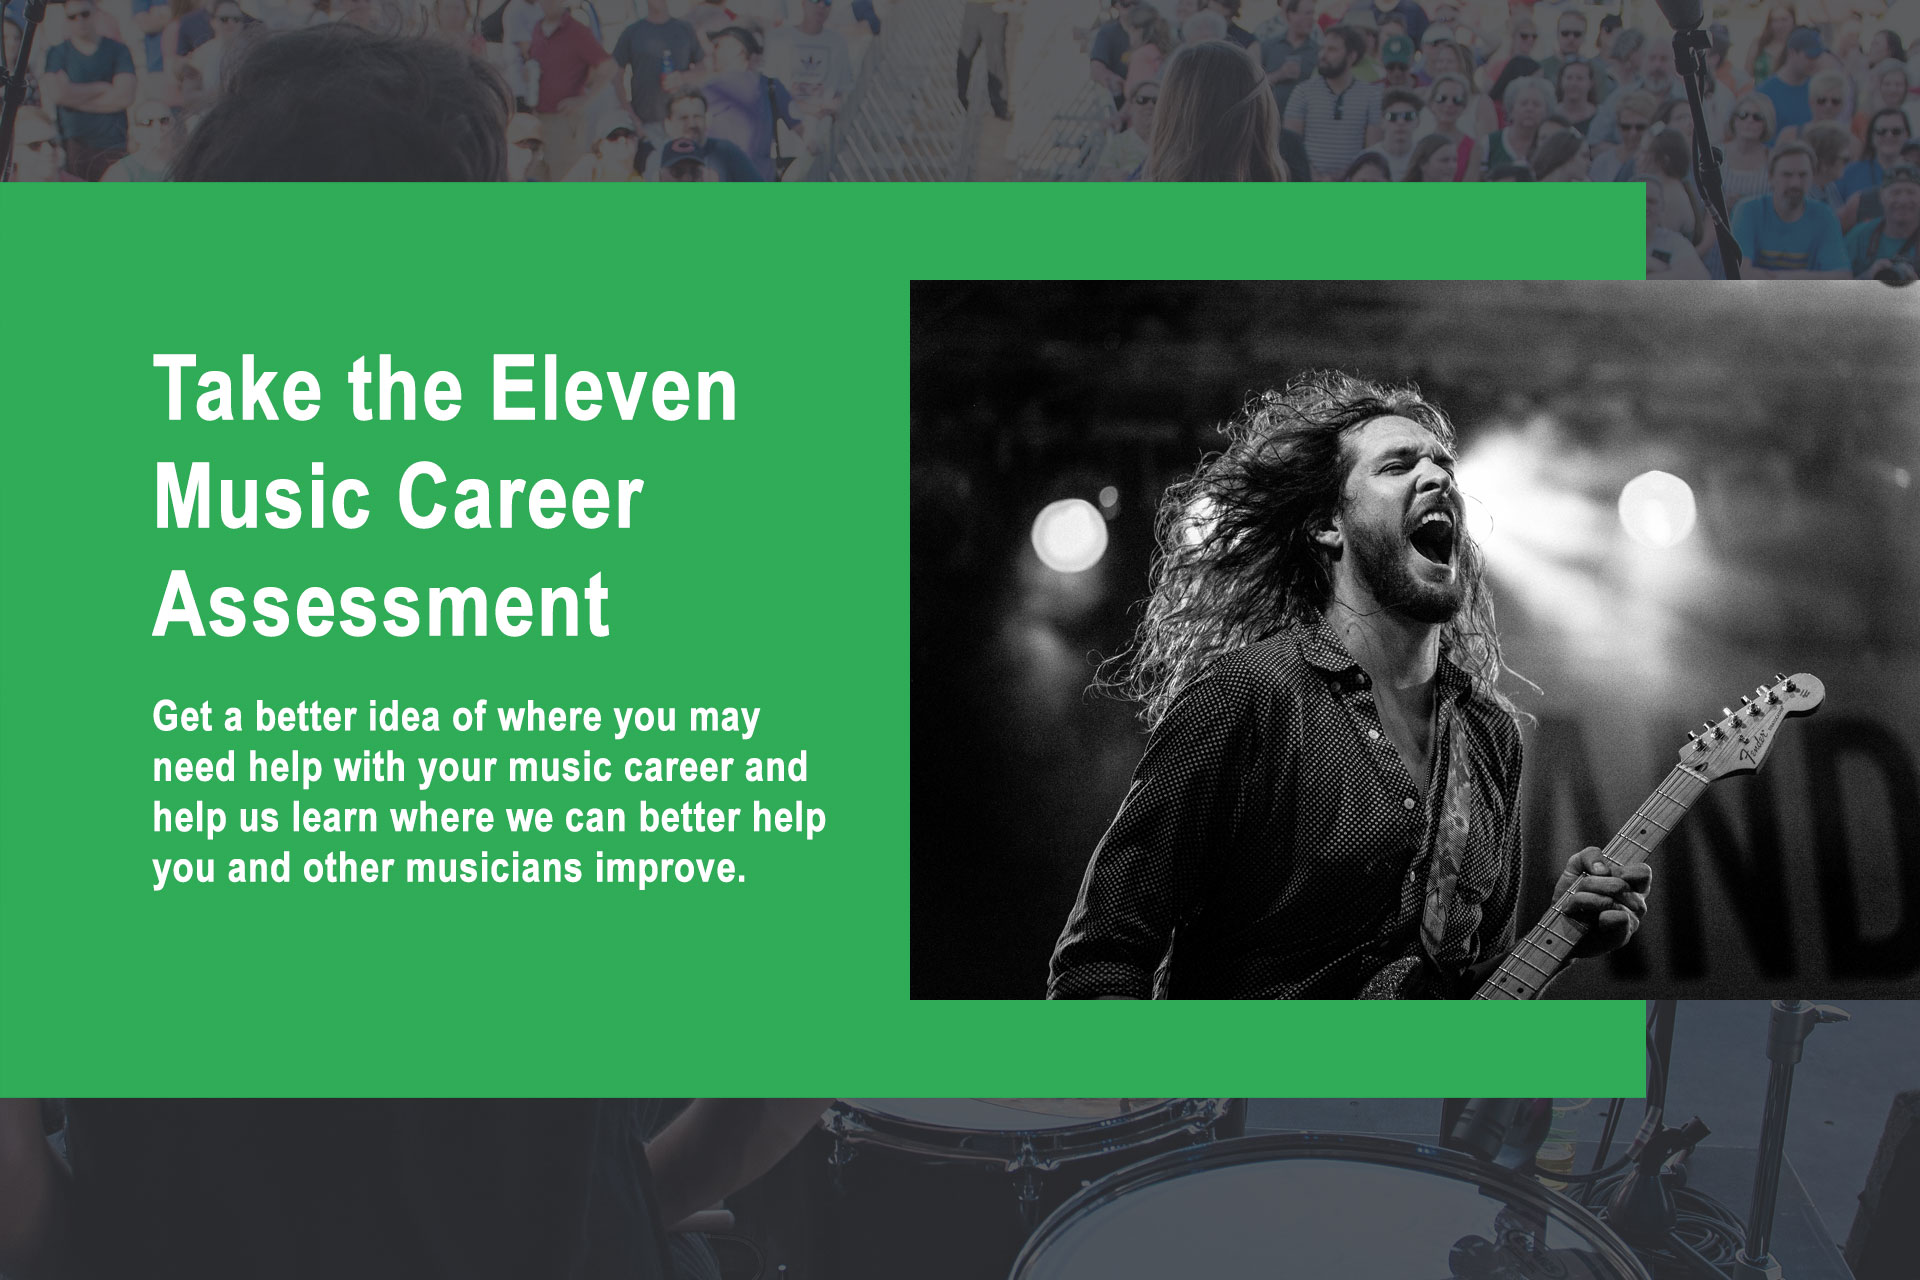 Take our Free Eleven Music Career Assessment